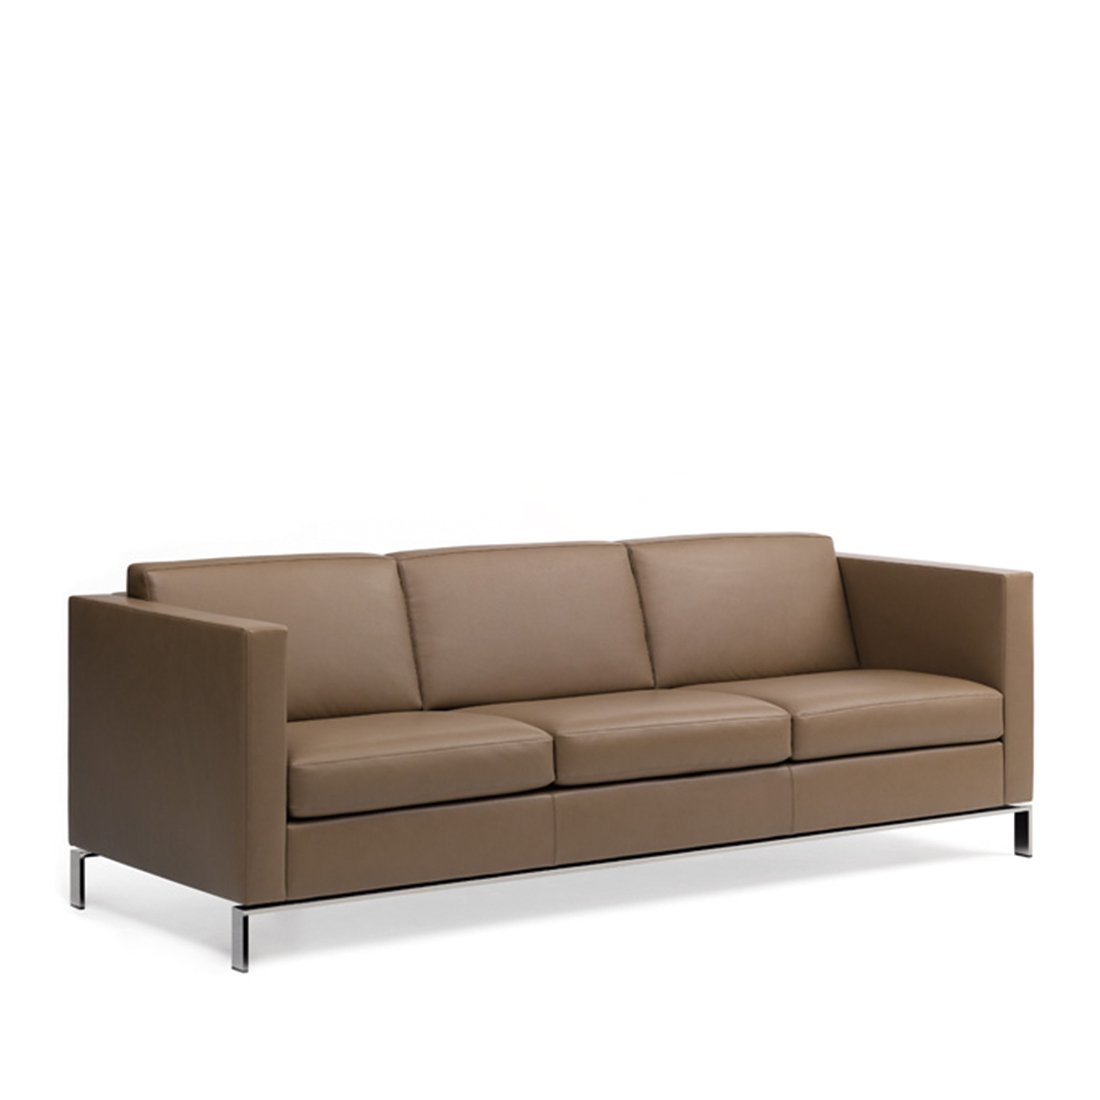 Walter Knoll Foster 500 Bank